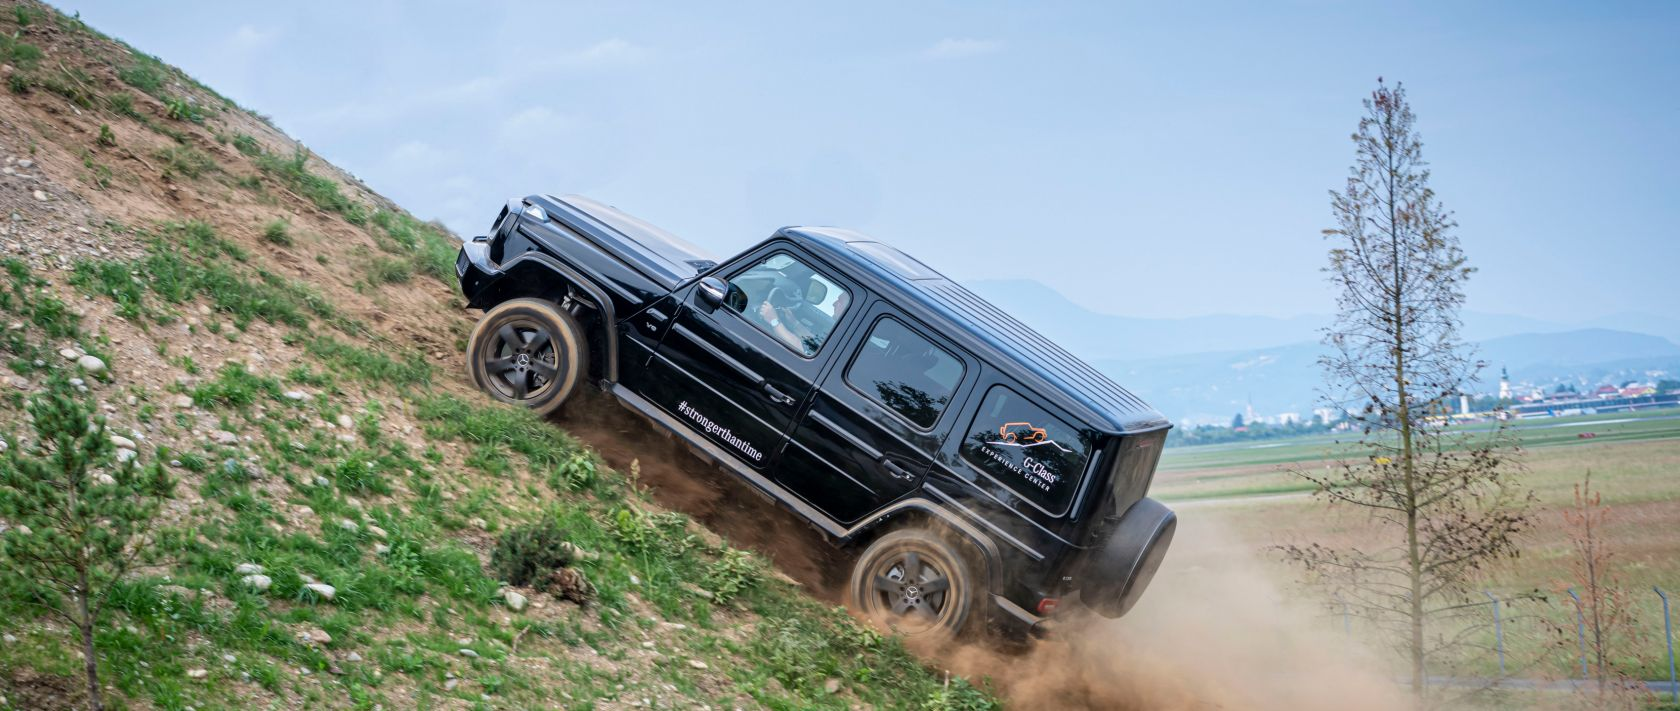 The Mercedes-Benz G 500 (W 463) in obsidian black metallic climbs a hill.